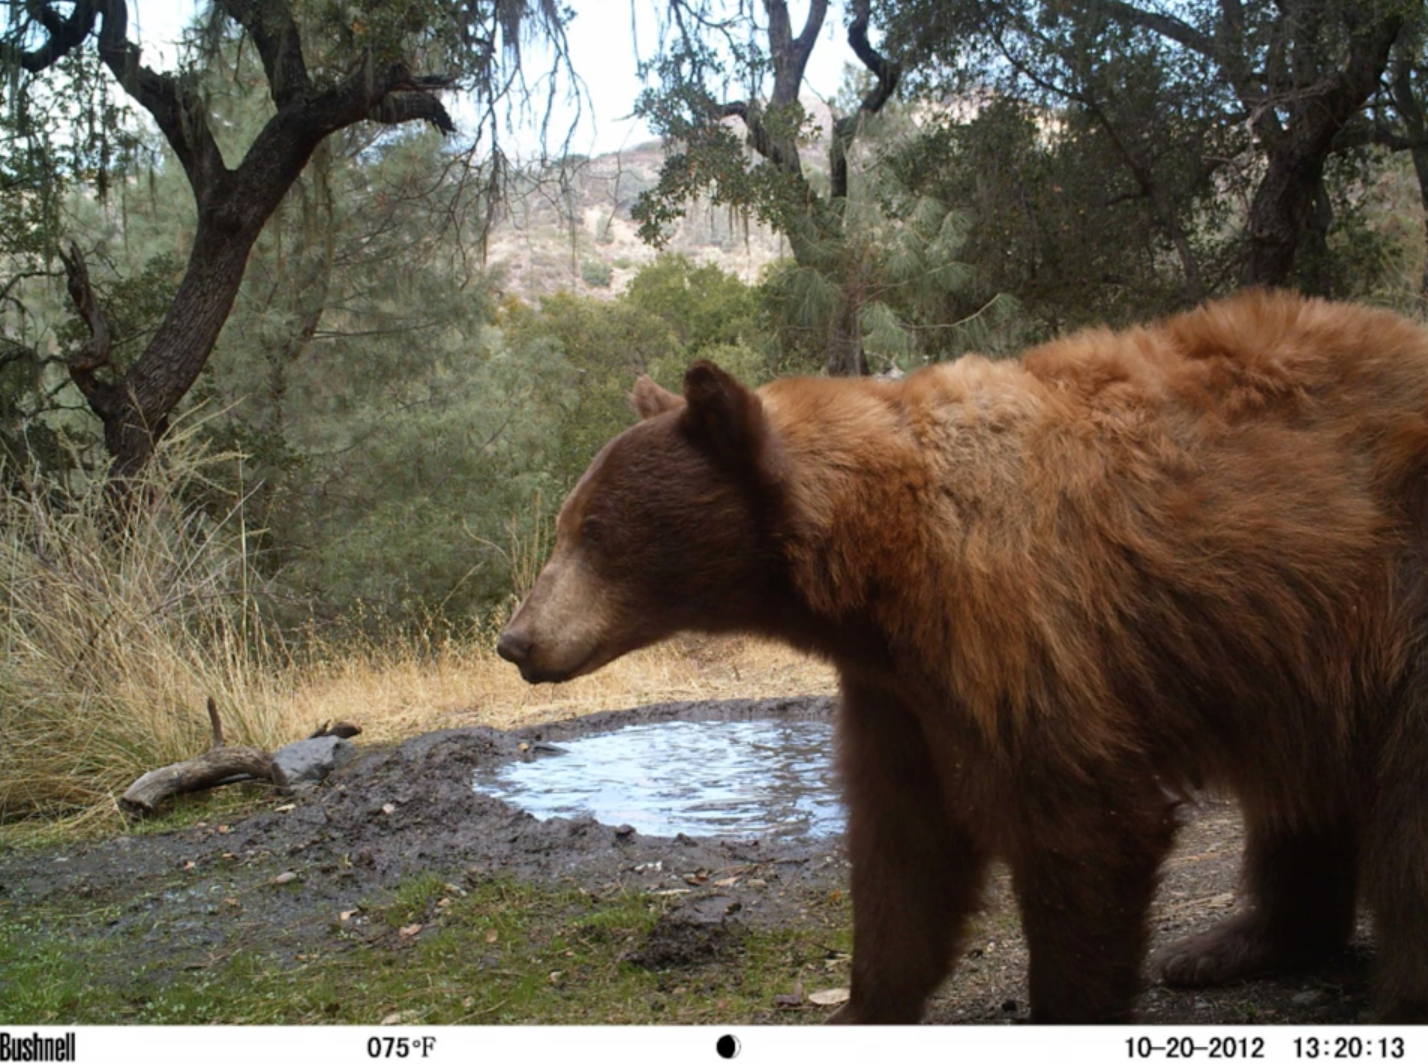 camera trap analysis